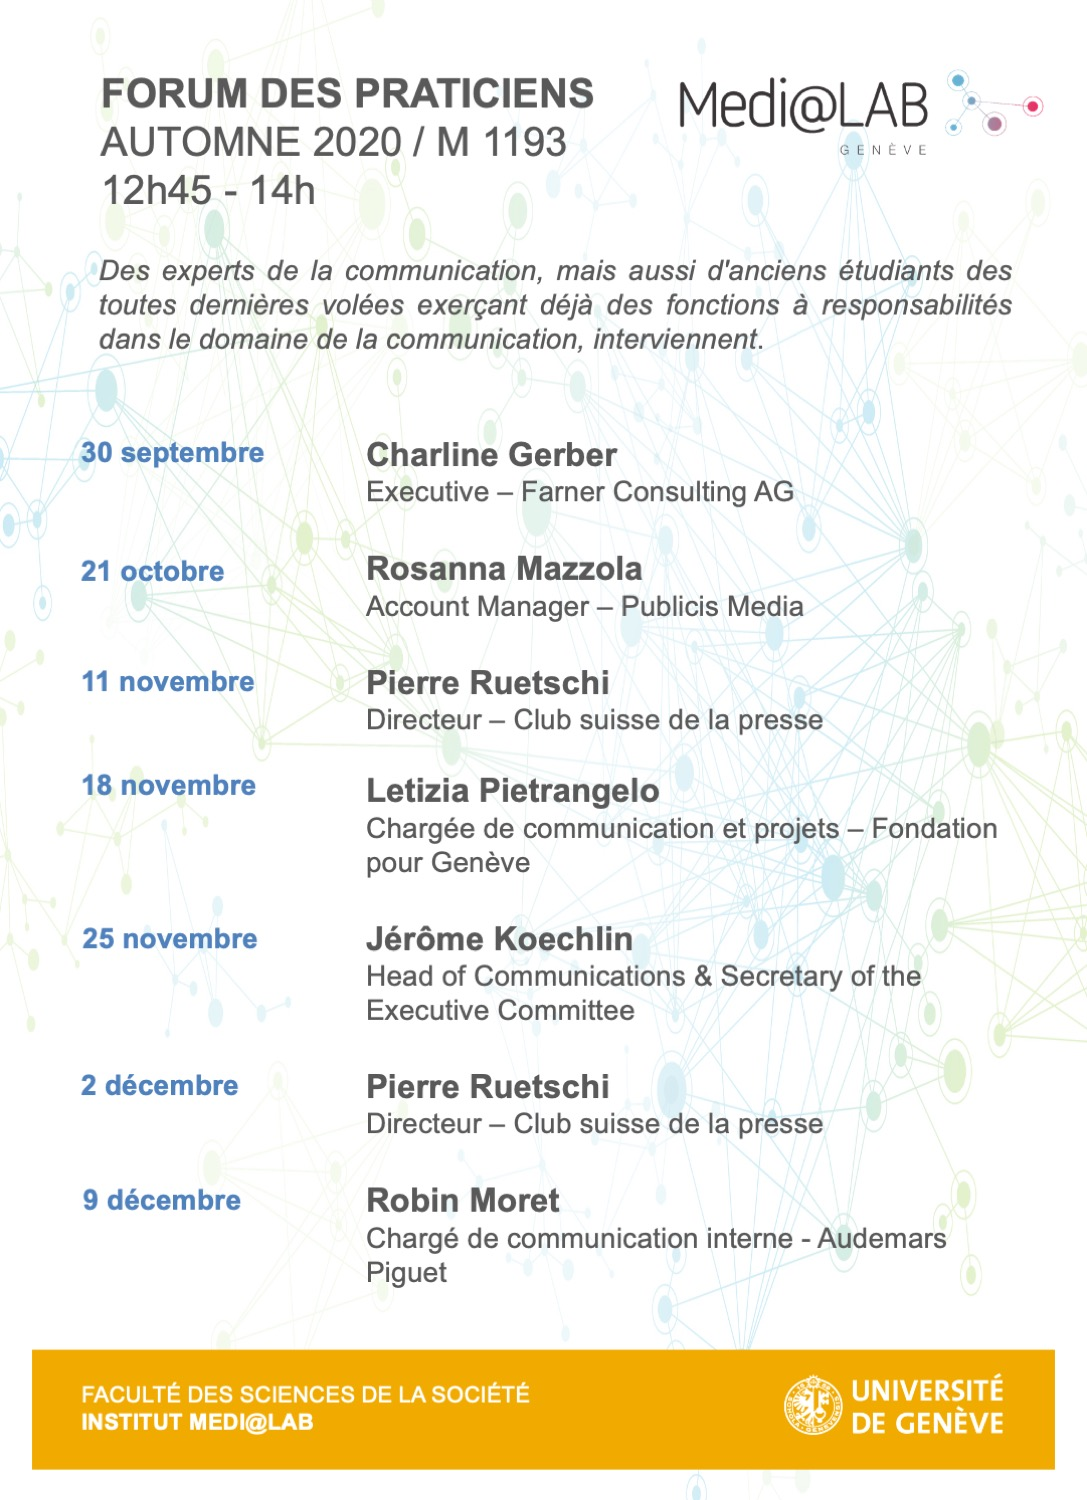 Programme-Forum des praticiens.jpg